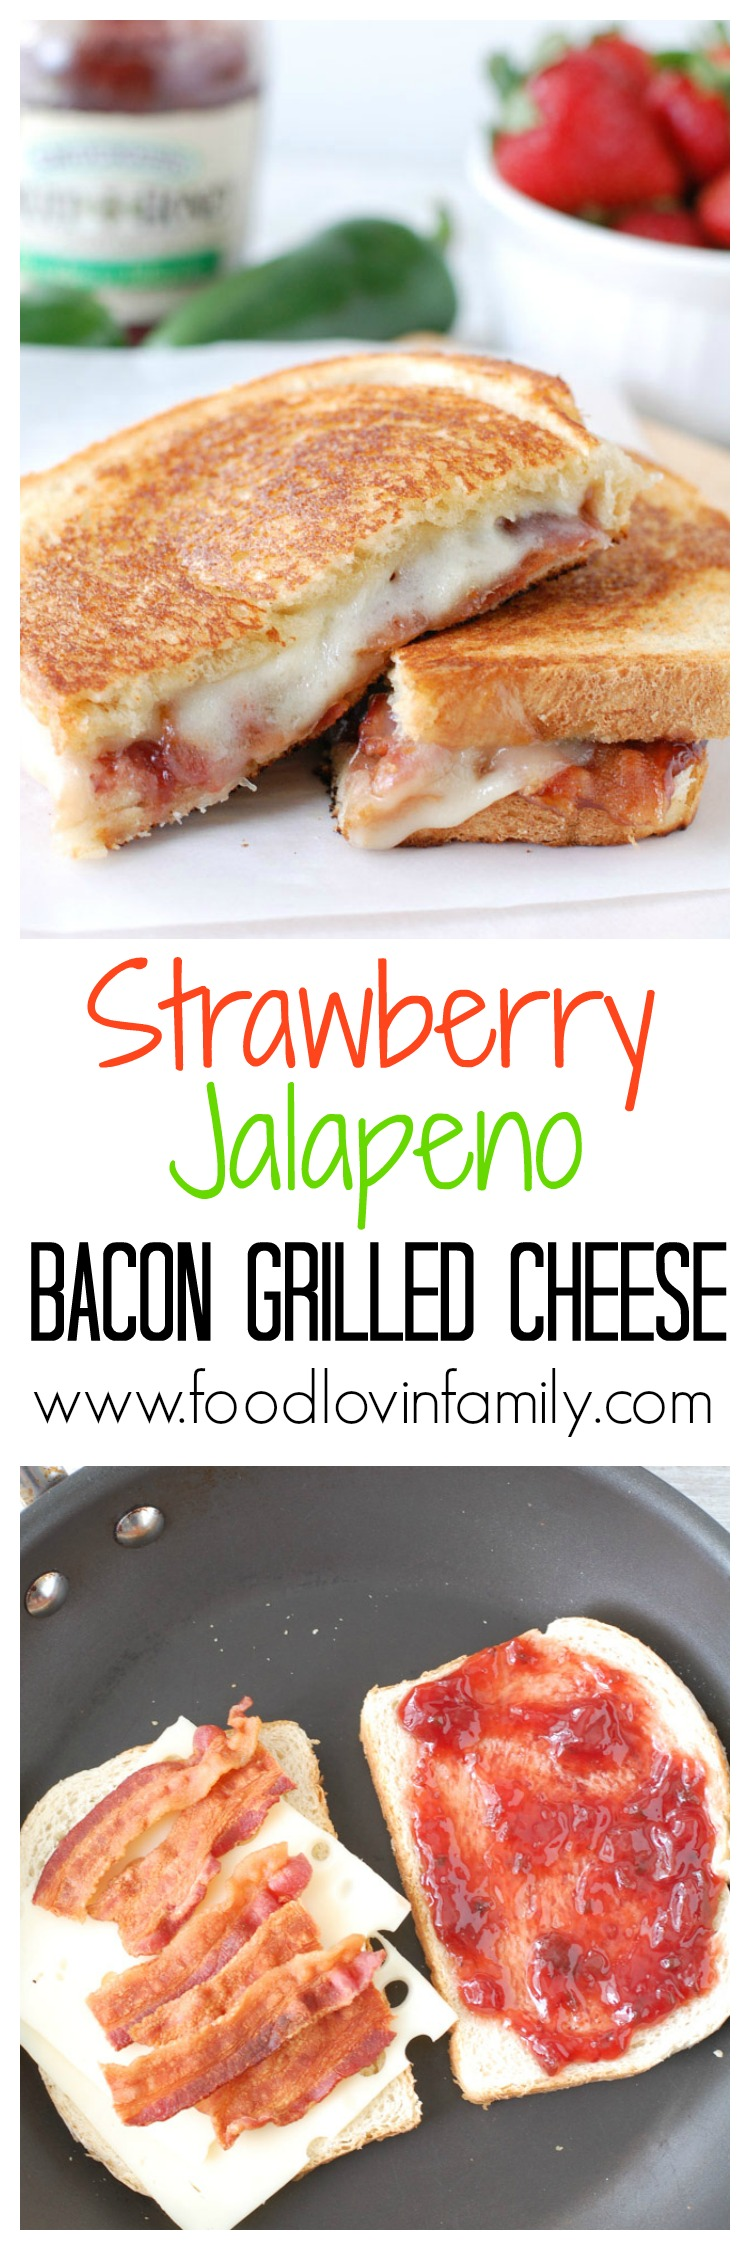 This Strawberry Jalapeno Bacon Grilled Cheese Sandwich is a crunchy, gooey combination of savory, sweet, and salty with just a touch of heat. To the delight of taste buds everywhere, sourdough bread, bacon, Swiss cheese and strawberry jalapeno fruit spread join together to create this tasty sandwich!